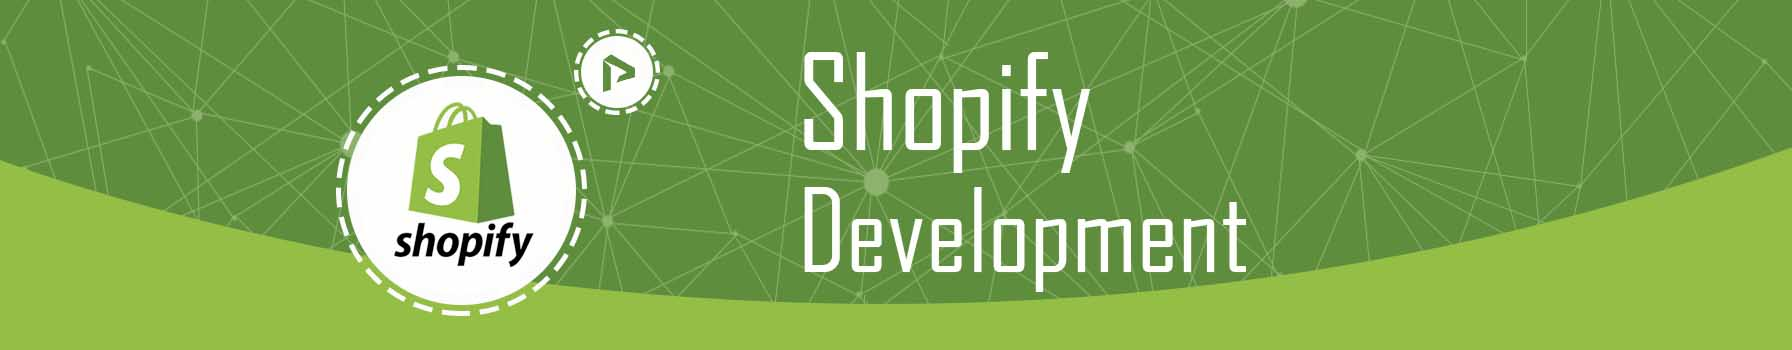 shopify-development.jpg